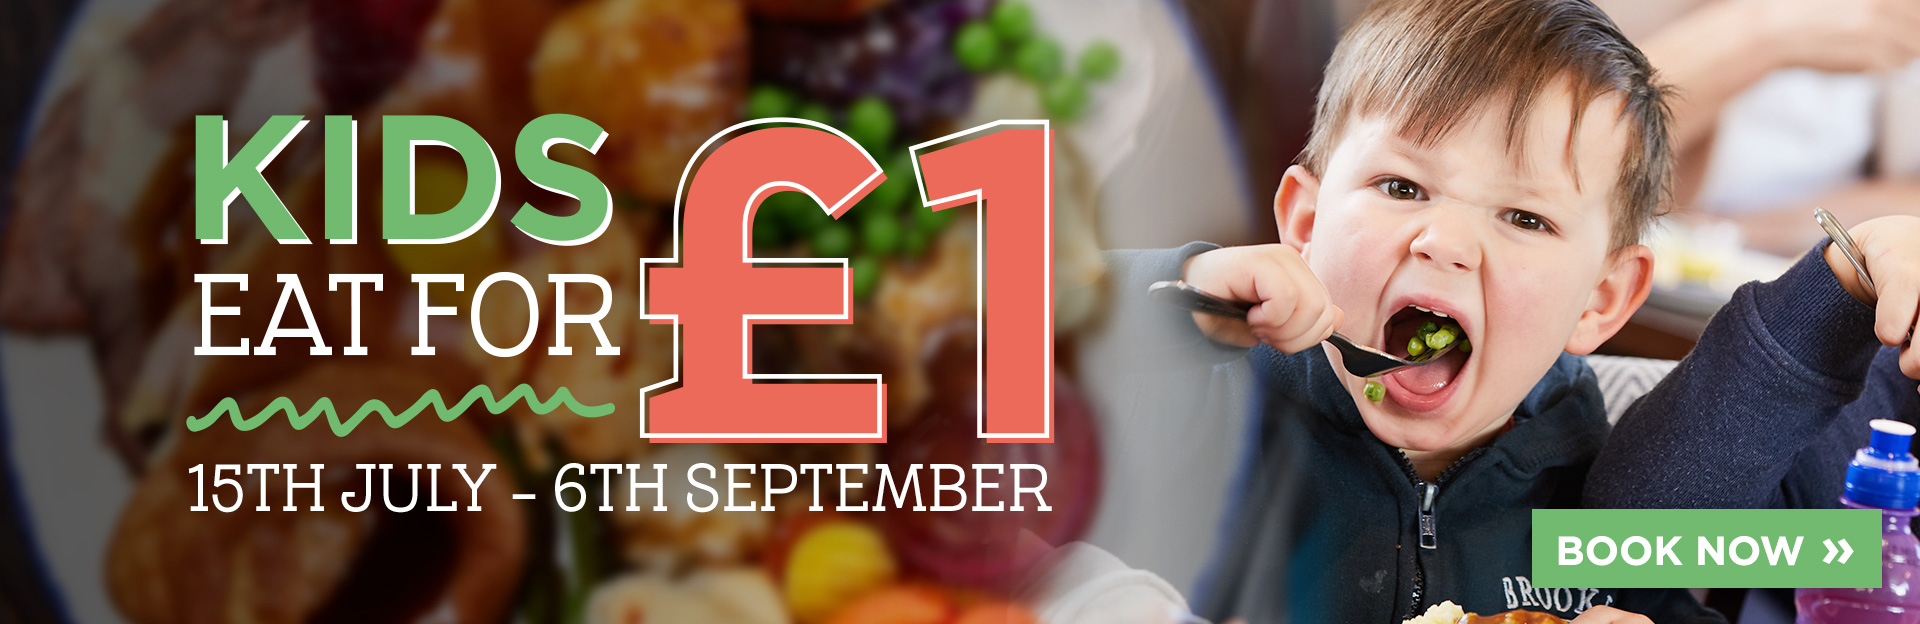 Kids eat for £1 at The Wheatsheaf Inn